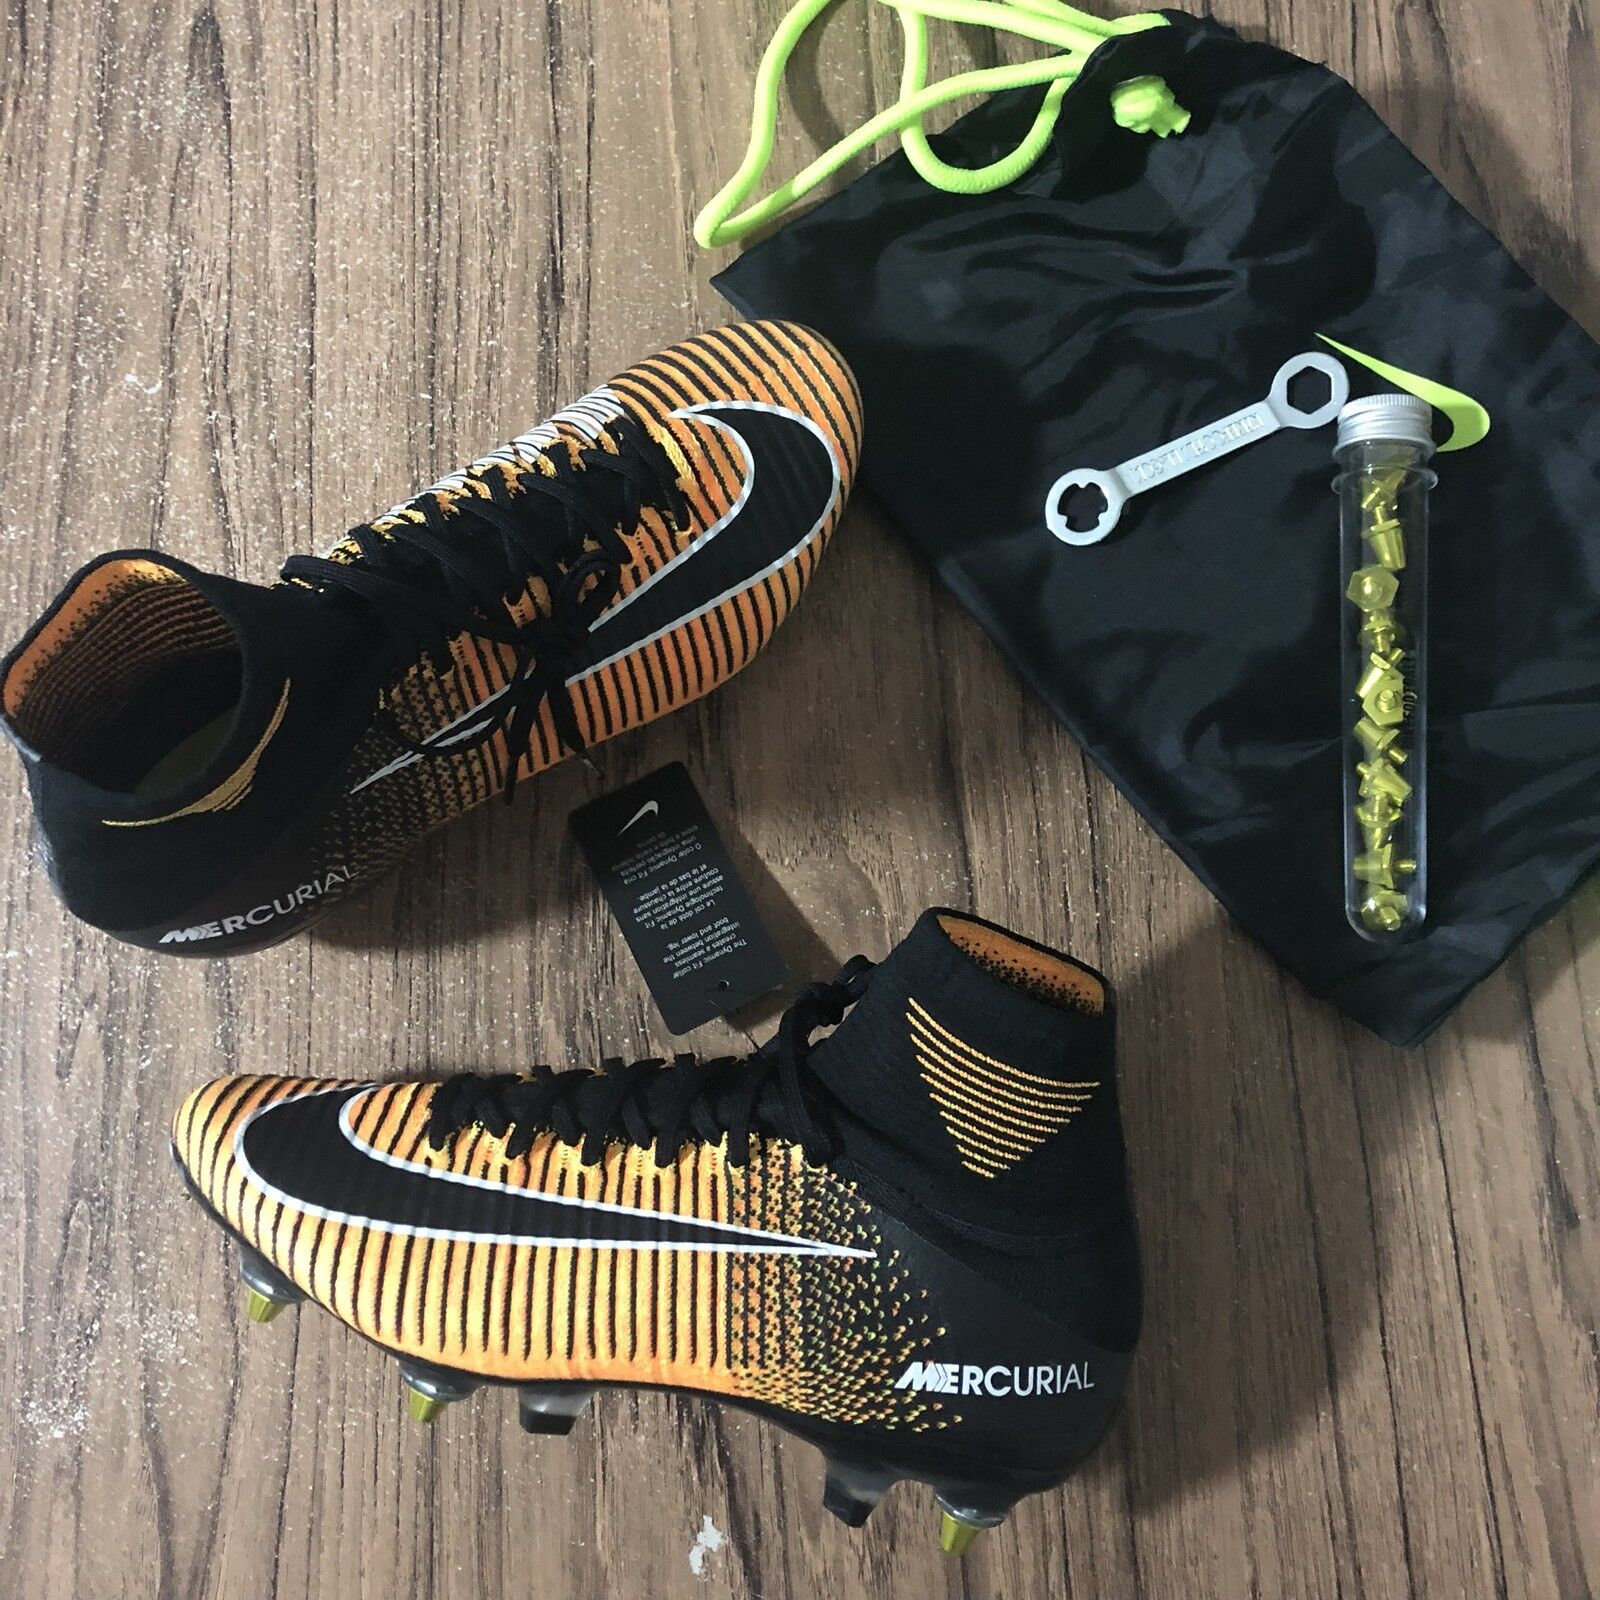 A659 Nike Mercurial SPFLY SG PRO AC Neymar 889286-802 Men's Cleats Comfortable